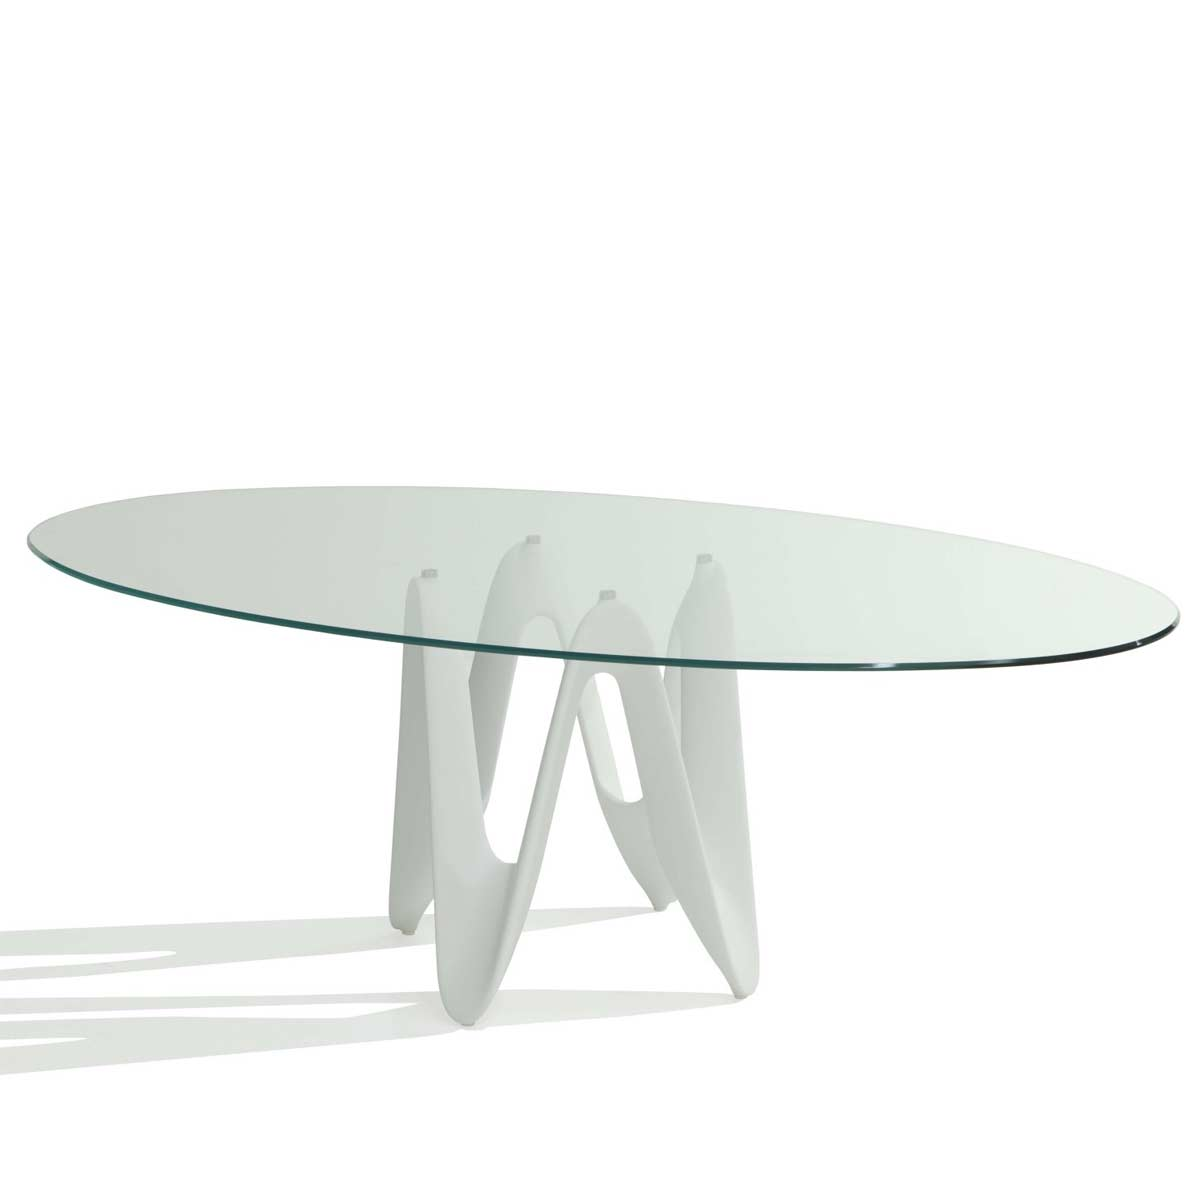 Klarity / Glass Furniture Shop / Glass Dining Tables / Wood U0026 Glass Dining  Tables / Lambda Oval Glass Dining Table